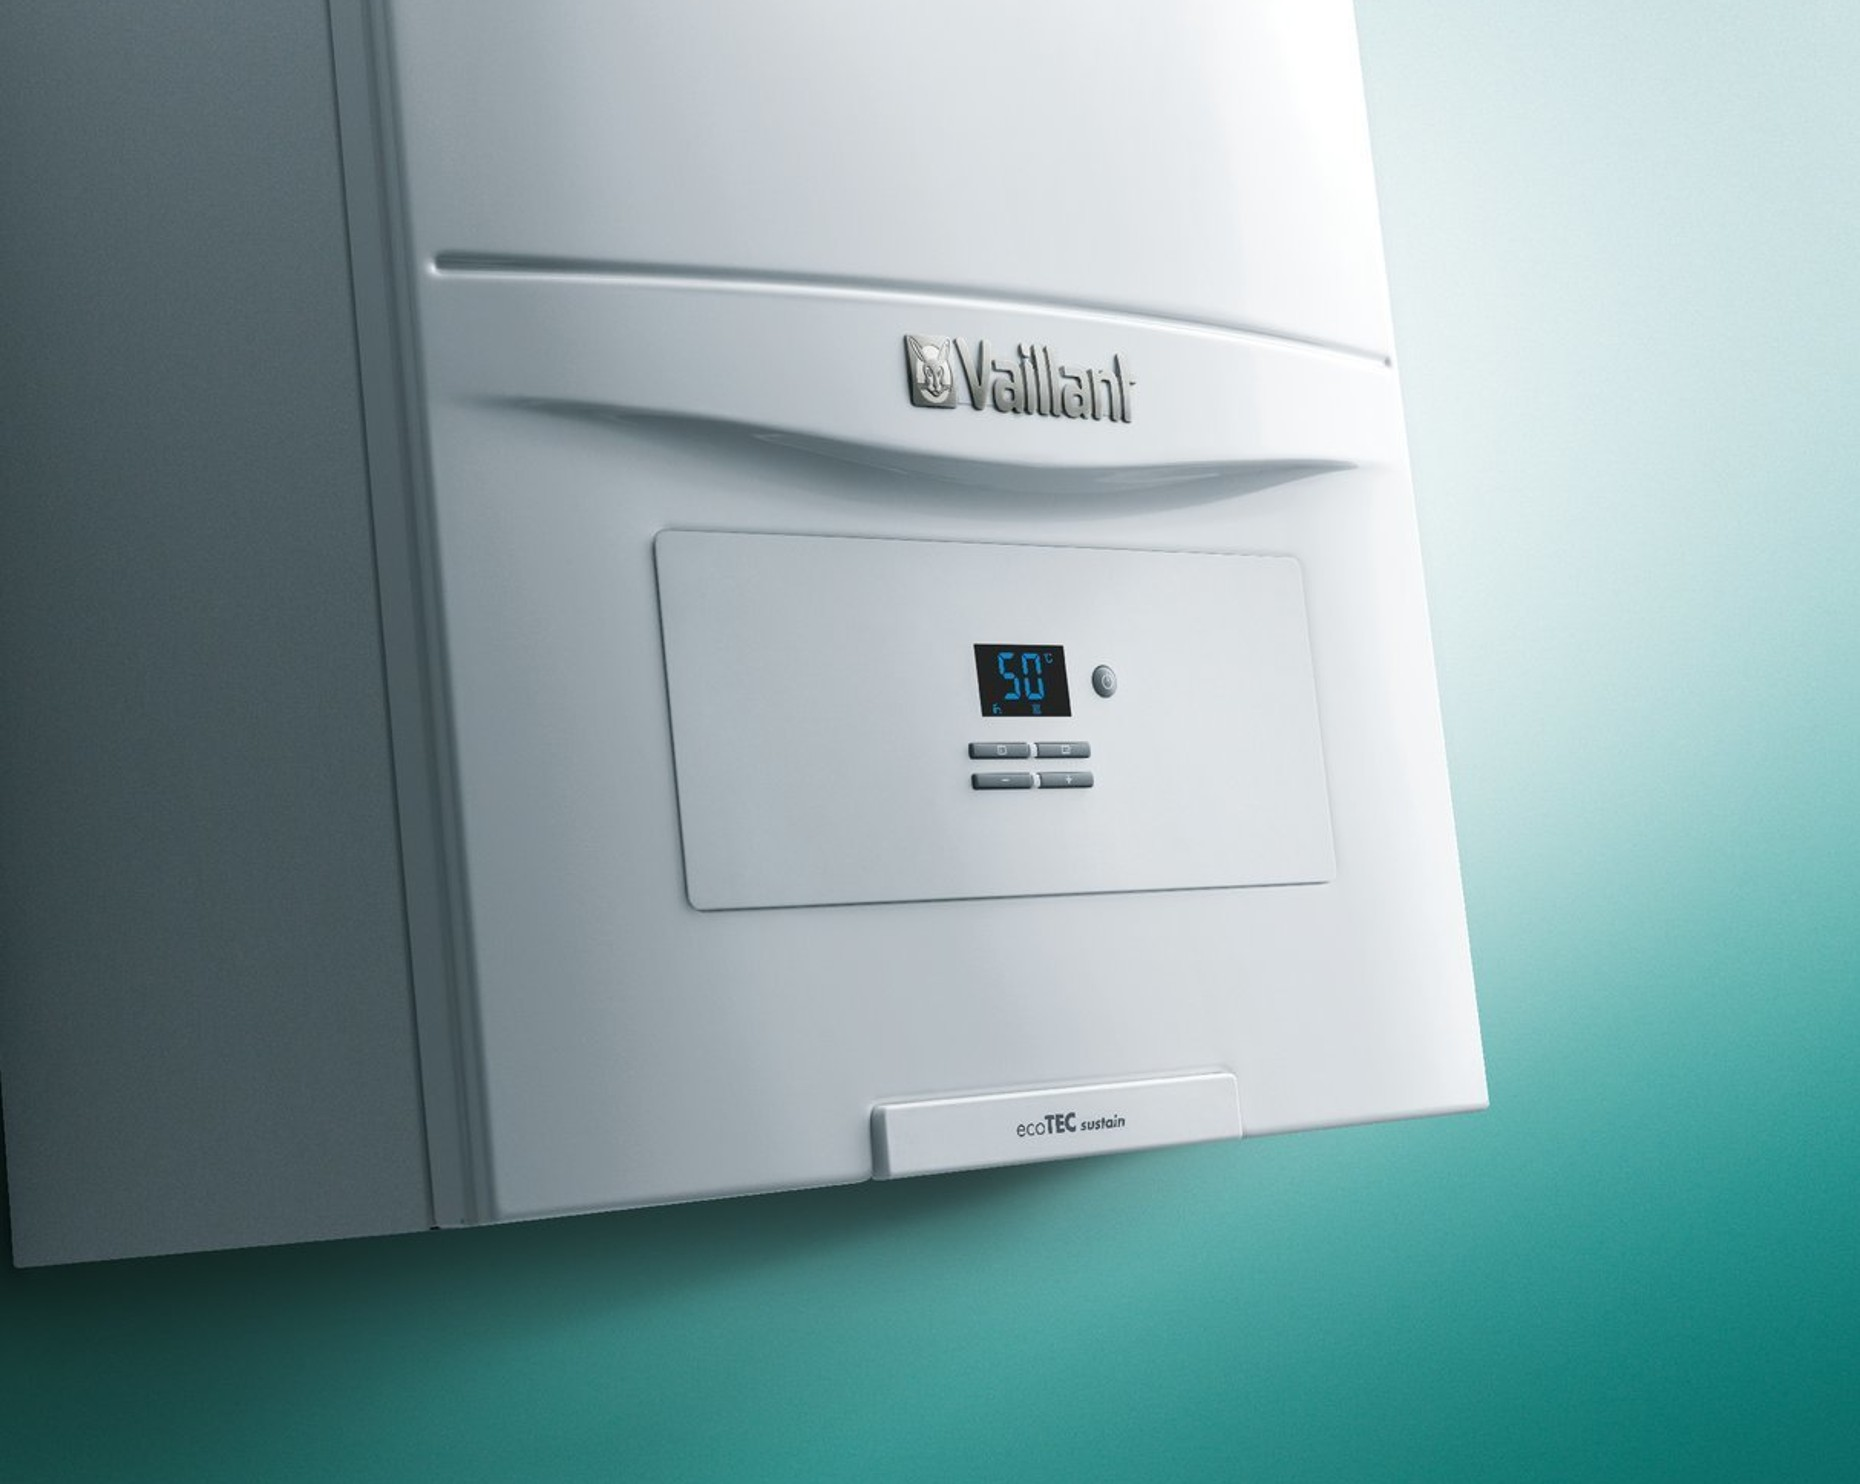 Vaillant central heating boiler